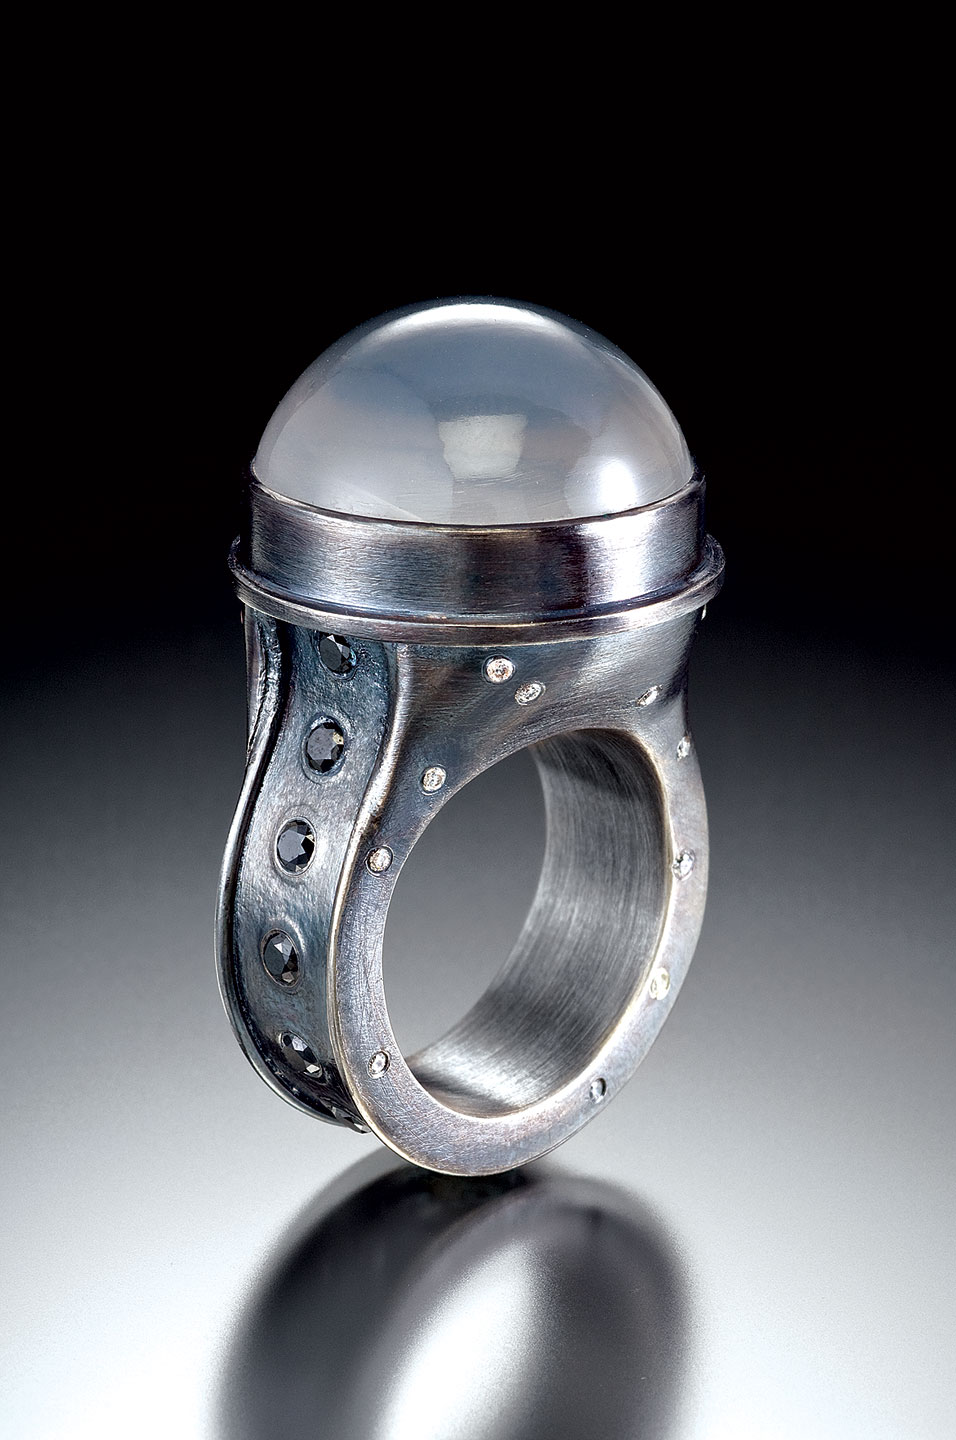 MOON RING of oxidized sterling silver, star quartz, white diamonds, black diamonds, 4.4 x 2.5 x 2.5 centimeters, 2010.